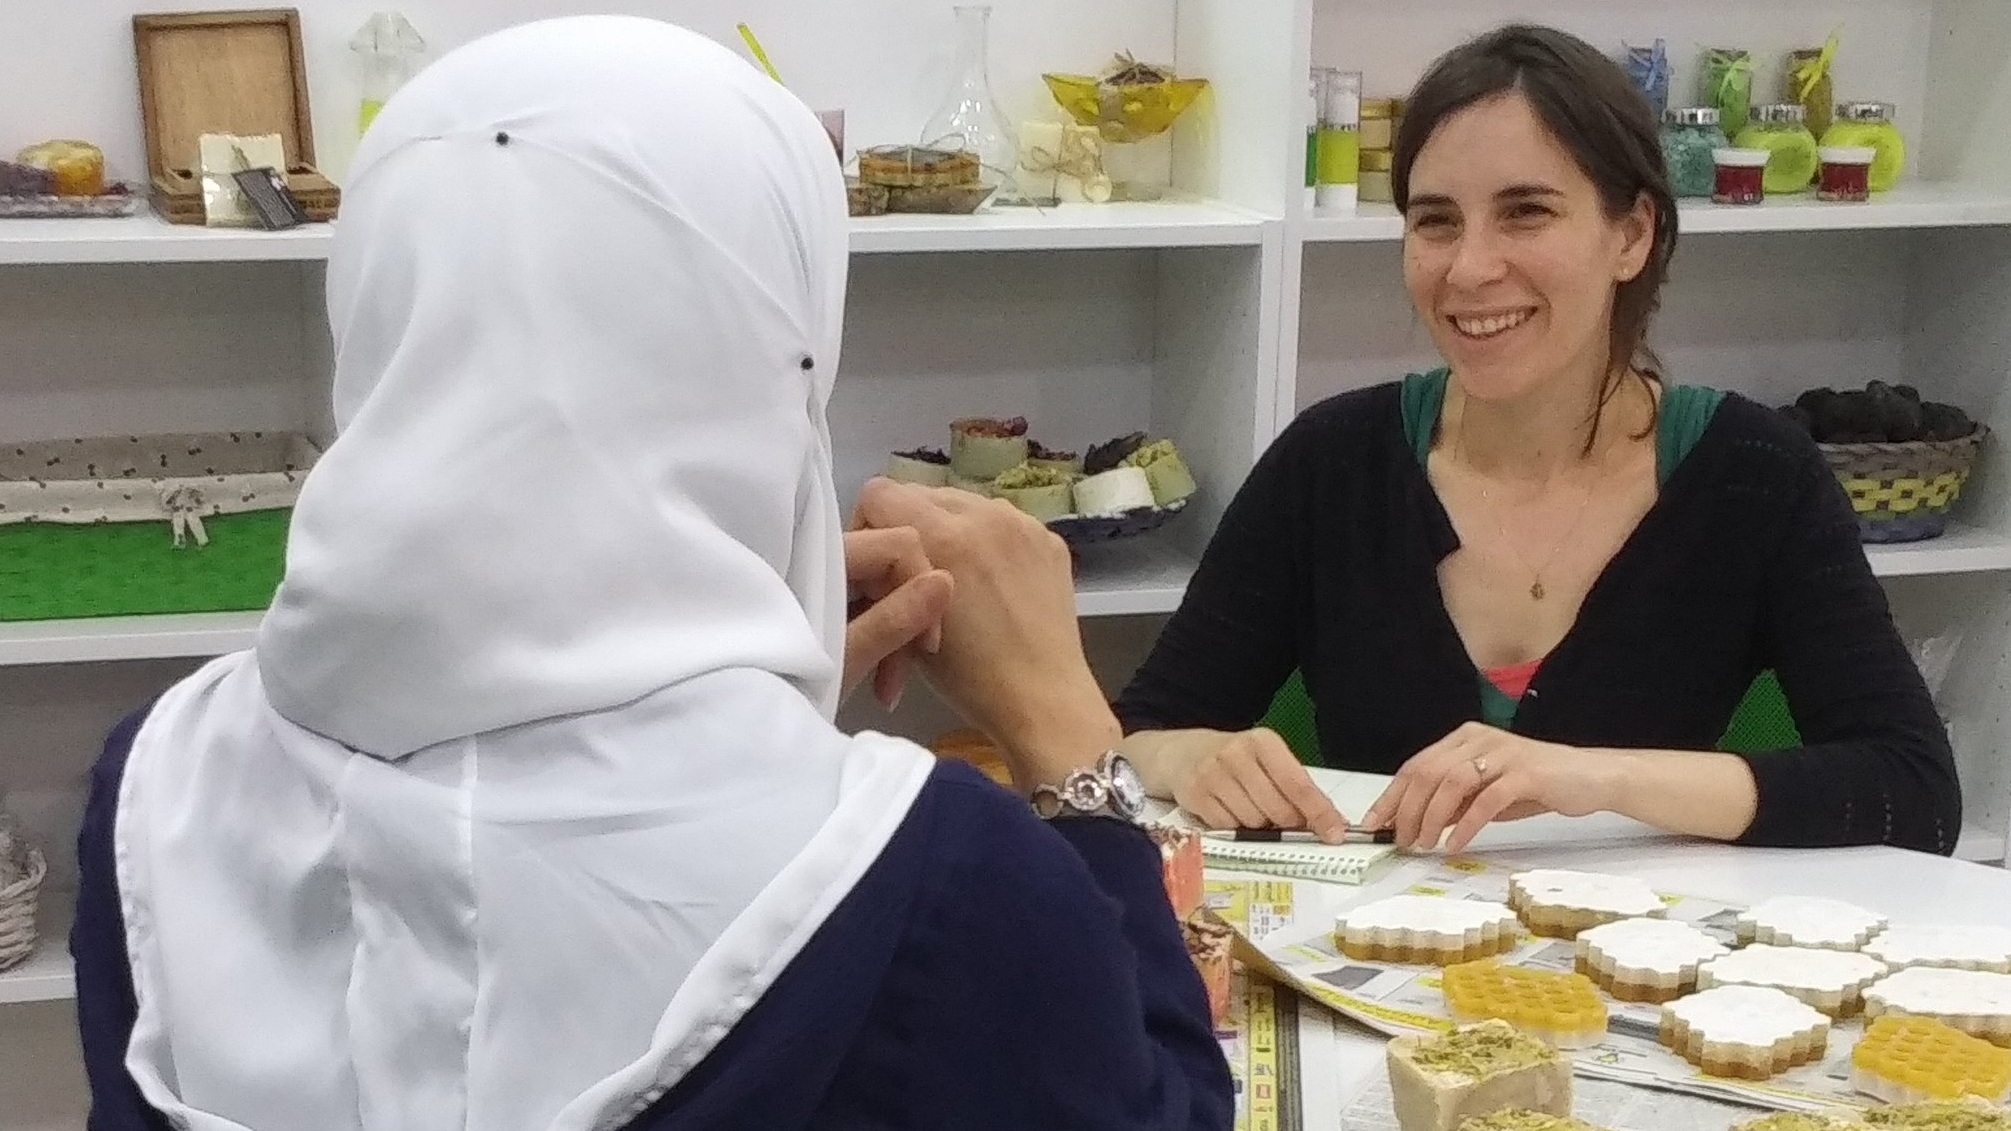 RI Advocate, Izza Leghtas, speaks to a Syrian refugee in Jordan.